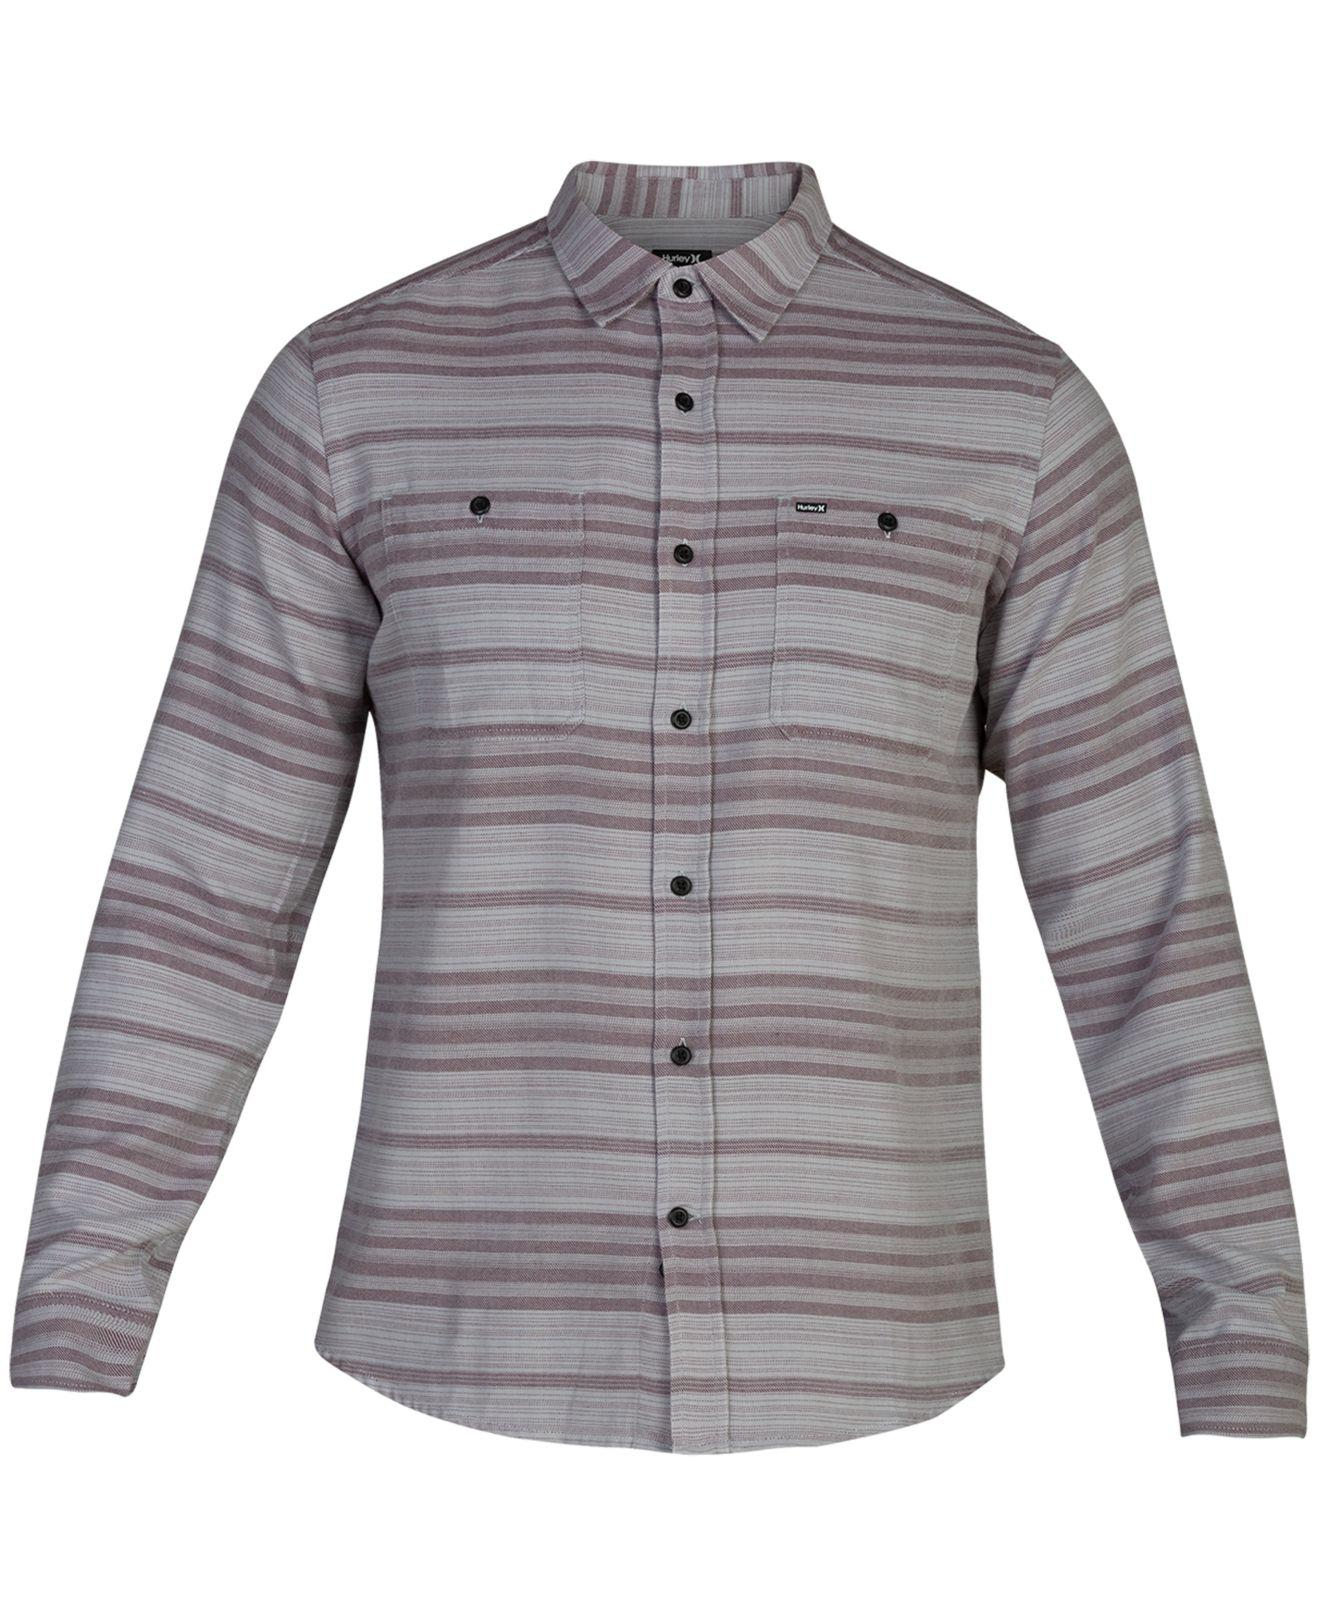 Lyst Hurley Blake Long Sleeve Shirt Created For Macys In Gray